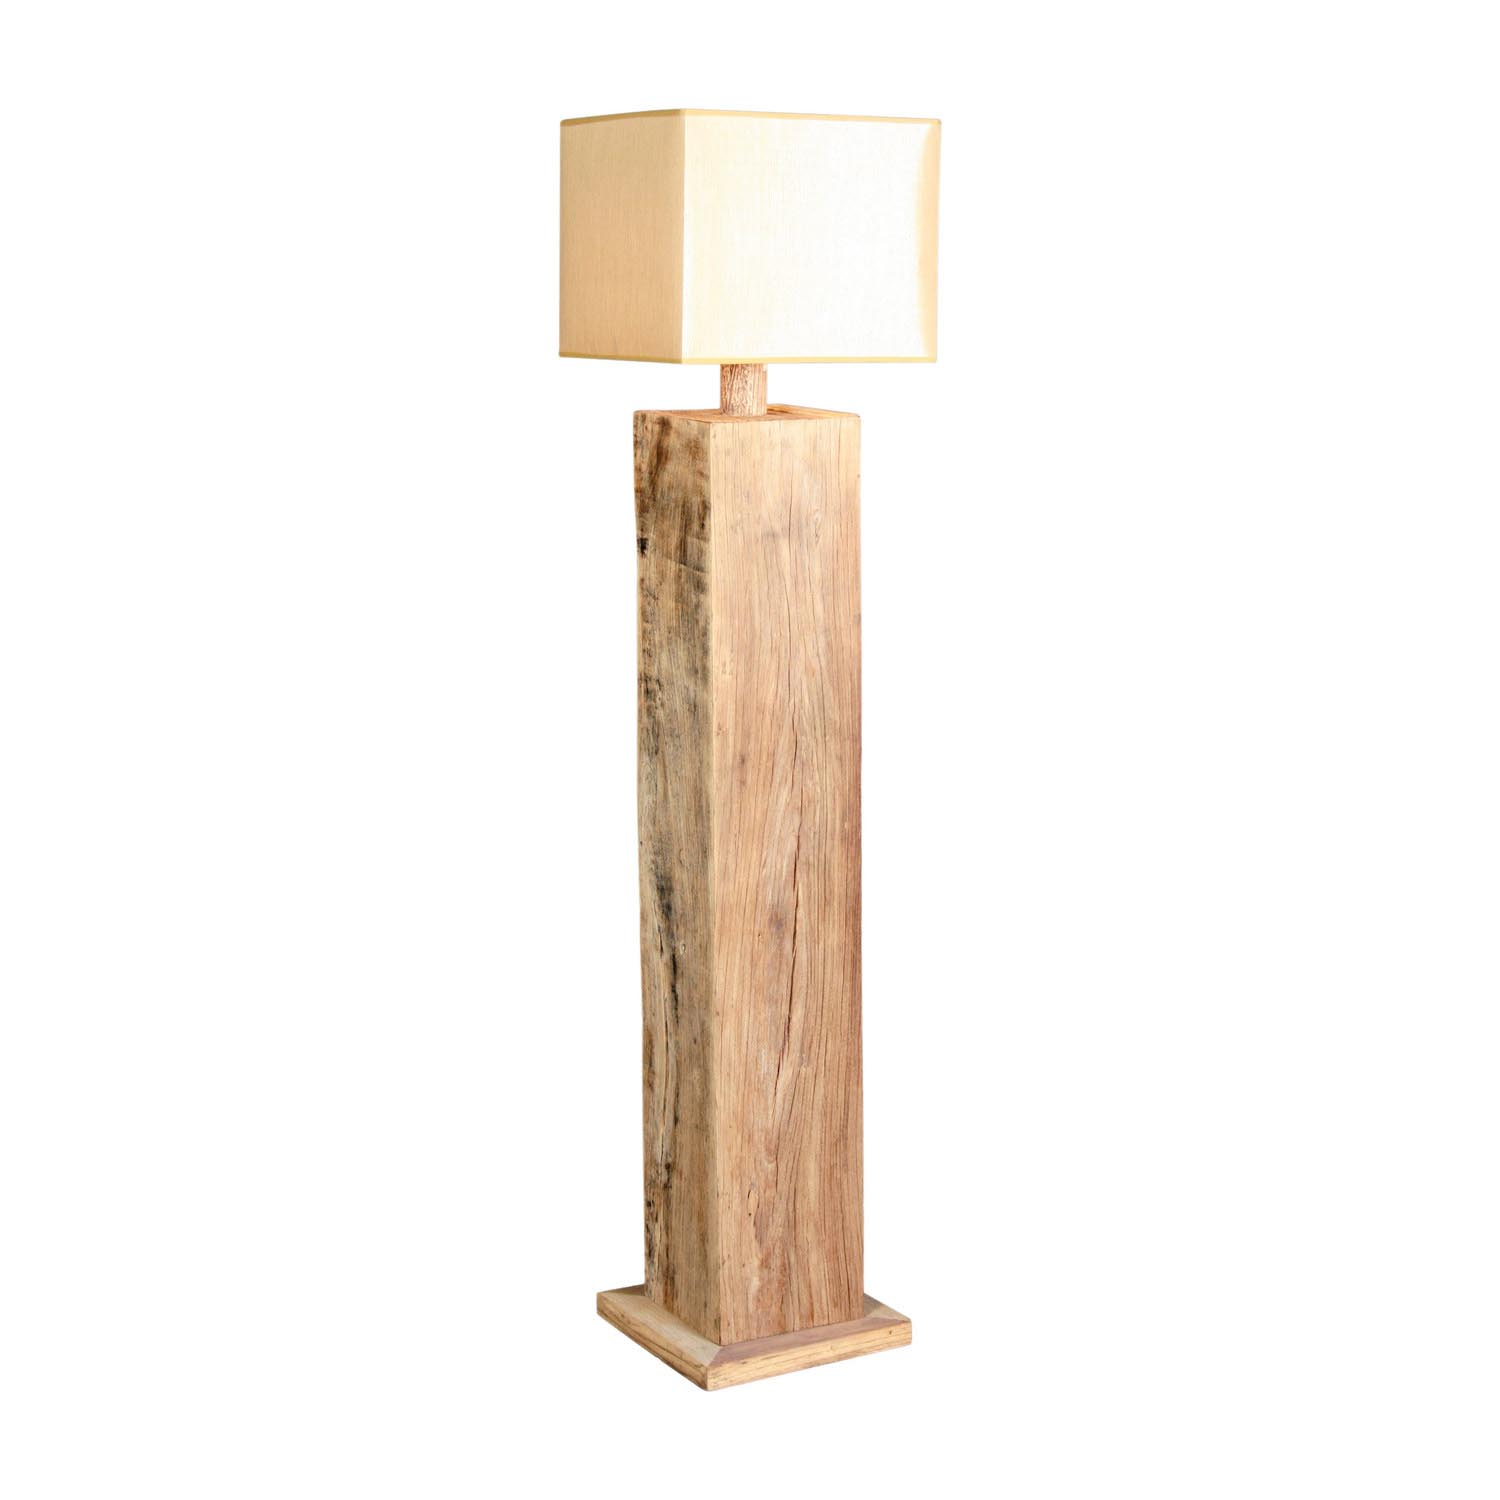 Floor Lamp Wooden Wooden Floor Lamps Ikea Light Fixtures Design Ideas